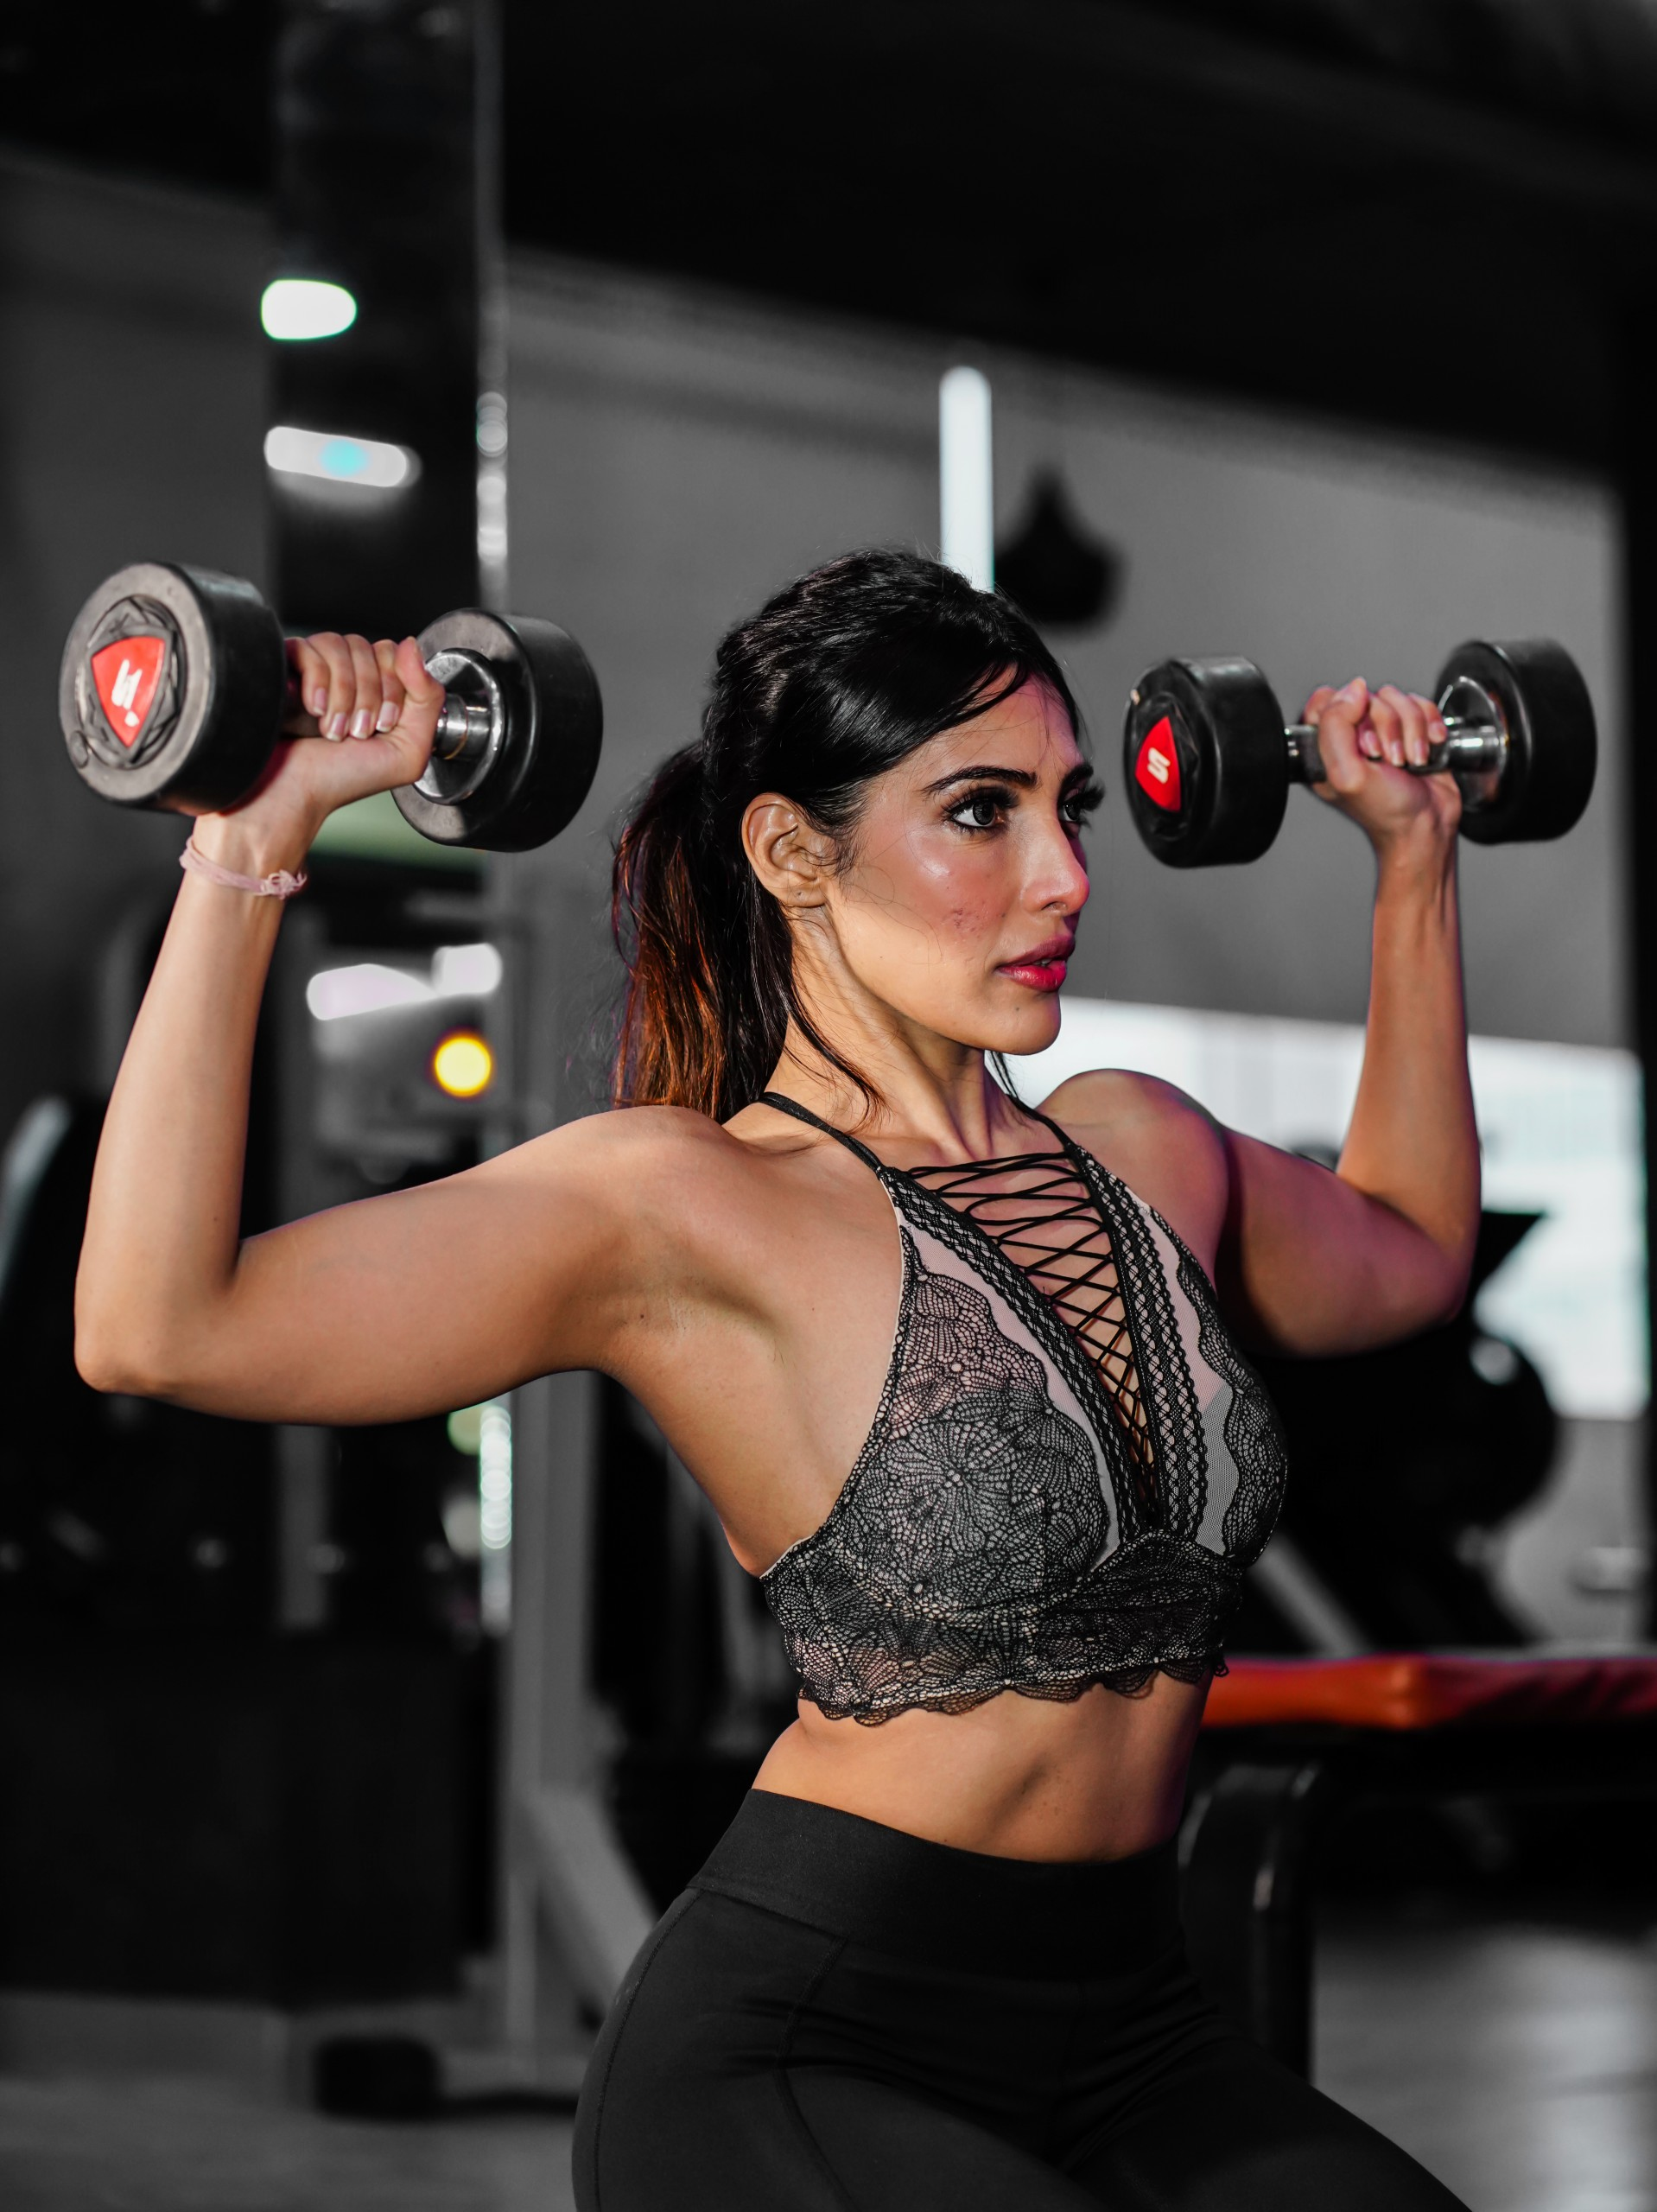 Woman exercise workout in gym